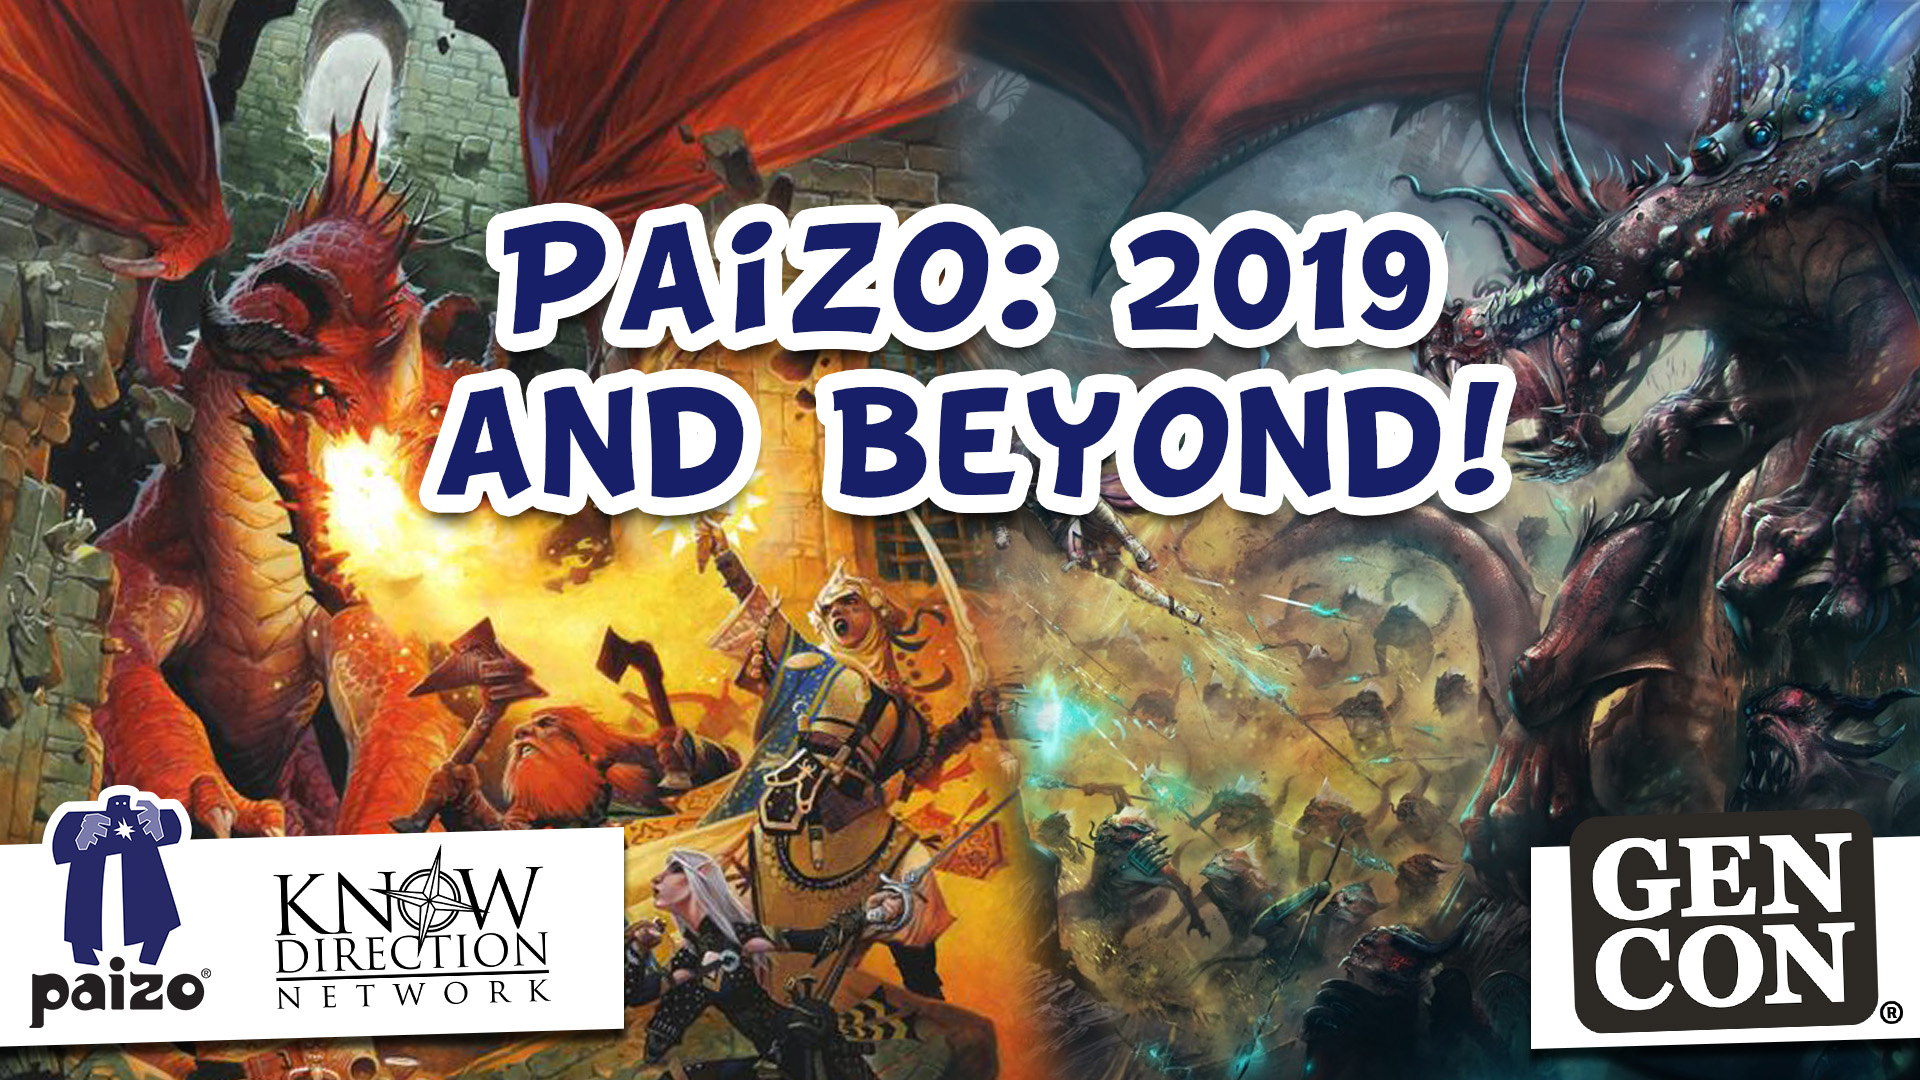 Paizo 2019 and Beyond Episode Card